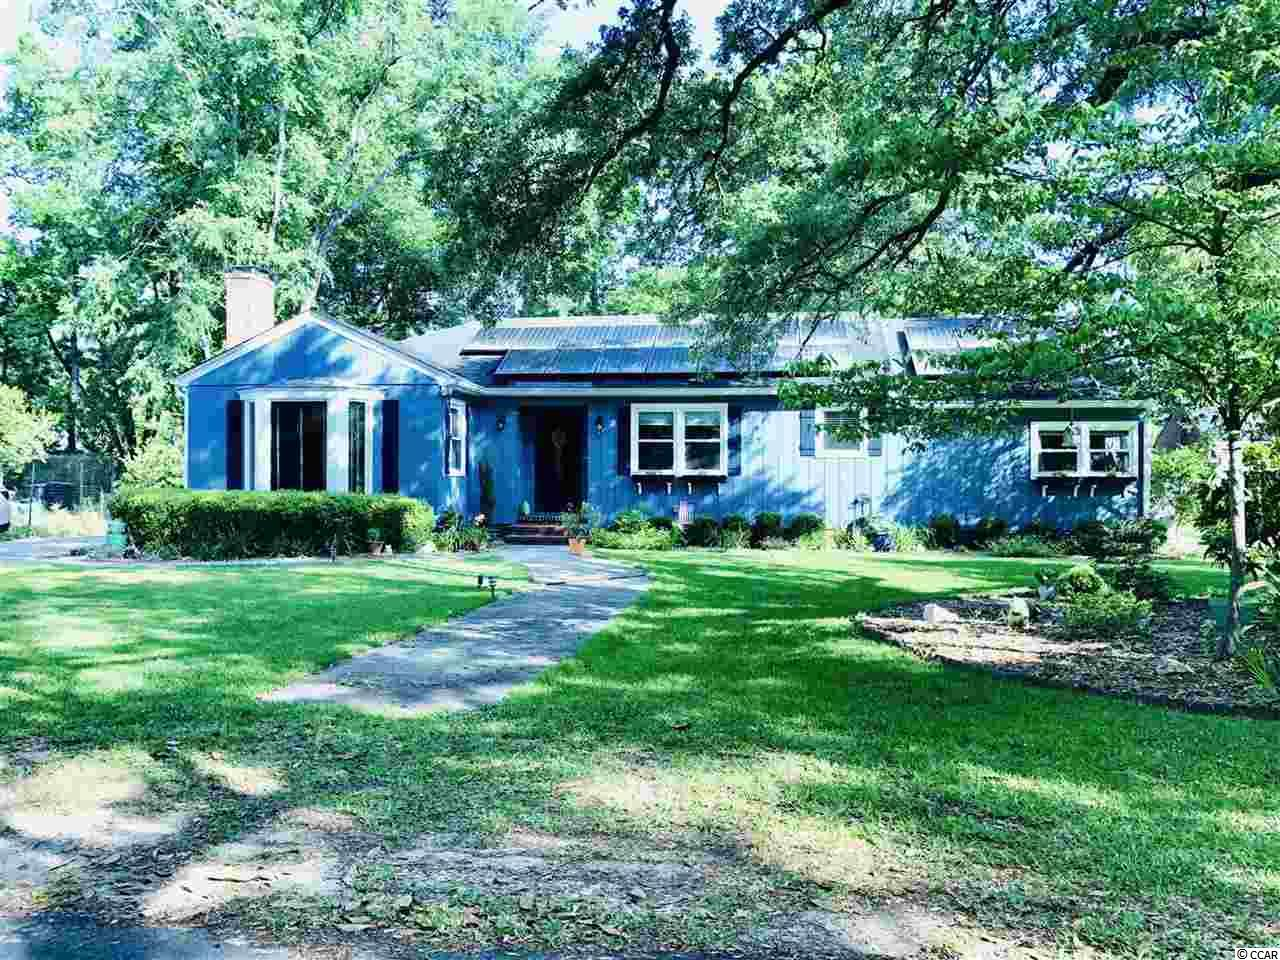 A rare recently FULLY RENOVATED home surrounded by live oak trees in the heart of Conway. Features SOLAR PANELS, new siding, kitchen, bathrooms, windows, sliding door, tankless water heater heated by gas, security system with cameras, and bay windows. This fully gutted and redone features a split bedroom plan offering you peace and quiet. As you walk in, you will find yourself in the foyer with a view of the living to your left and dining/open kitchen across you with a view of the screened porch behind dining room. Hardwood floors and newer paint running throughout the house with tile floors in bathrooms. Living room features 5 windows, including bay windows for plenty of sunlight overlooking the front yard. This modern open kitchen offers all new white cabinets, granite countertops and stainless steel appliances with windows overlooking the back yard. The two other bedrooms are overlooking the live oak tree in the front yard. If you are looking for SHADED WITH MANY TREES, LANDSCAPED WITH FLOWERS AND STONES BACK YARD, then this is the home for you. Motivated sellers, don't miss your chance to take a look at this house.